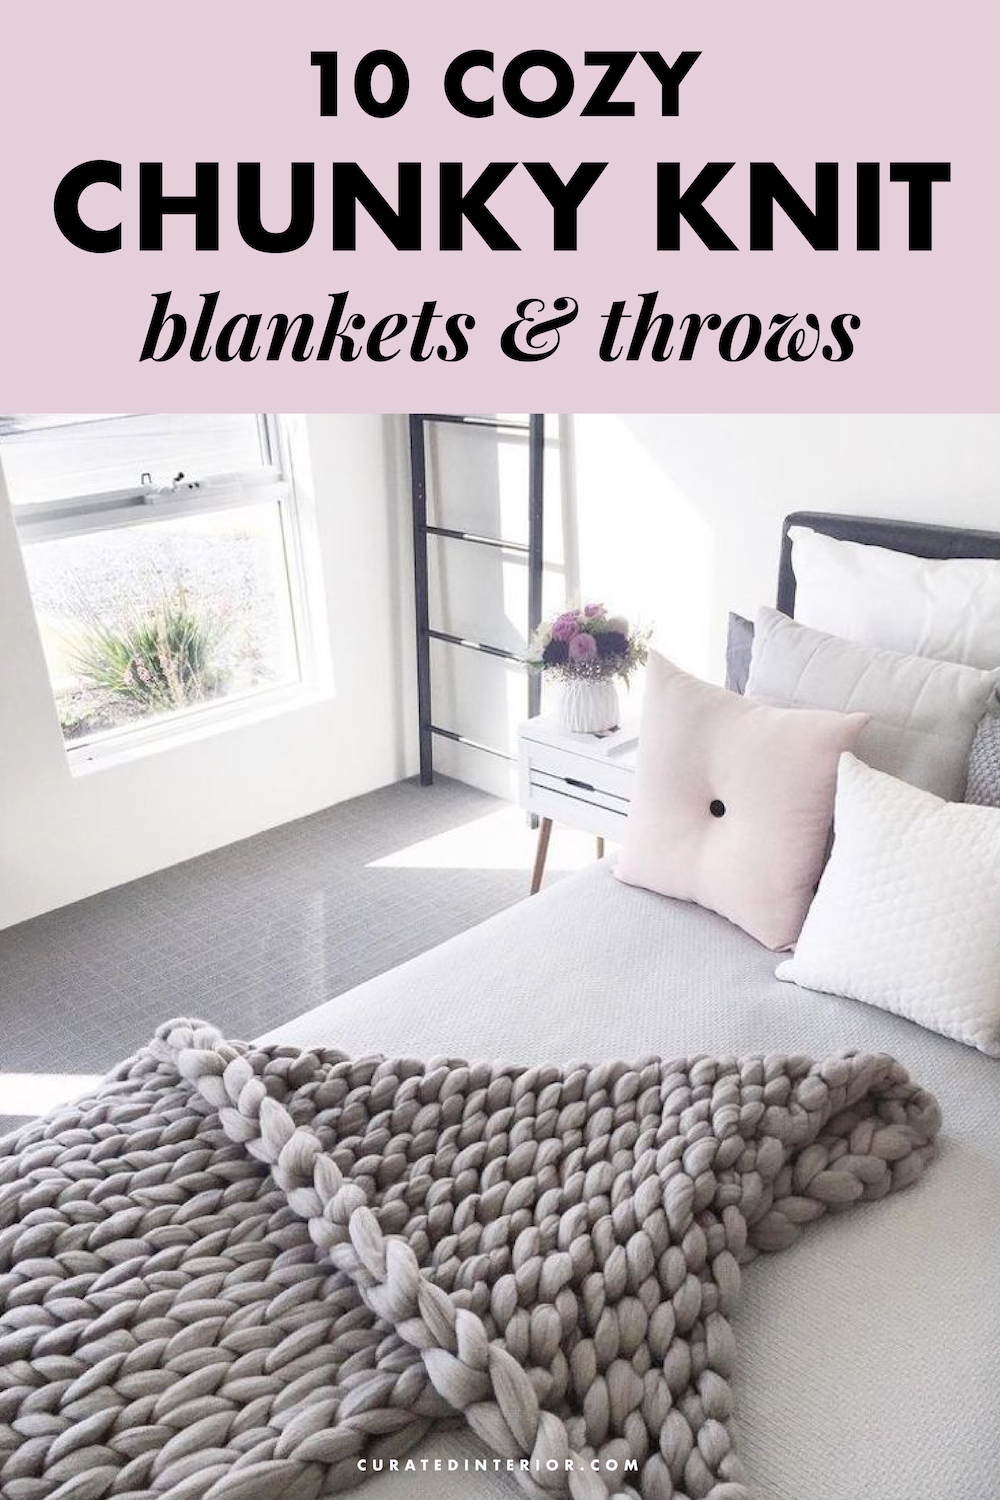 10 Cozy Chunky Knit Blankets and Chunky Knit Throws! #blankets #throws